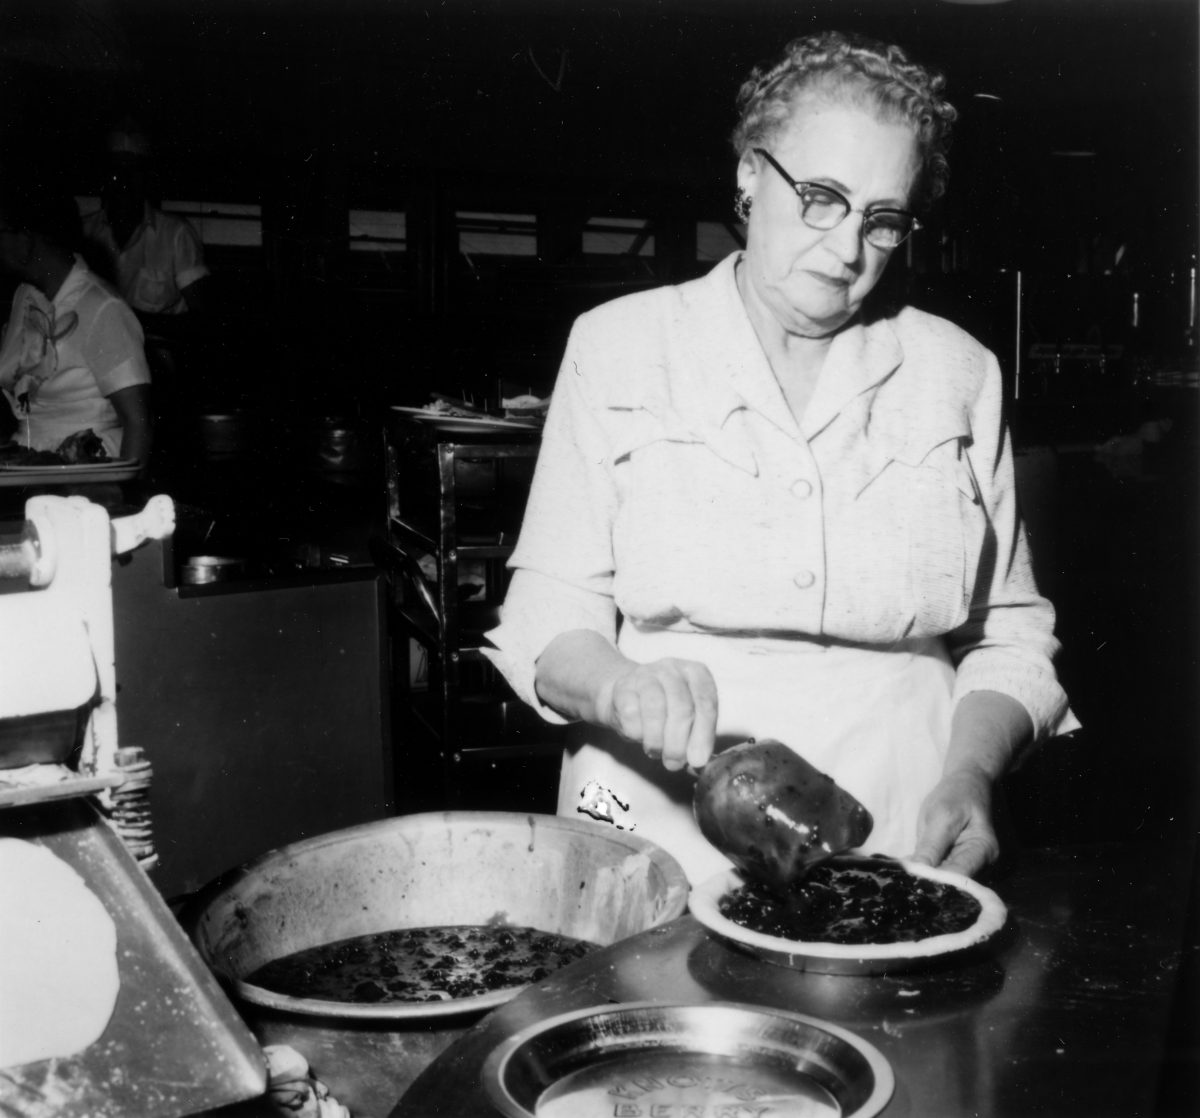 Cordelia Knott Making Boysenberry Pie - Credit OC Archives